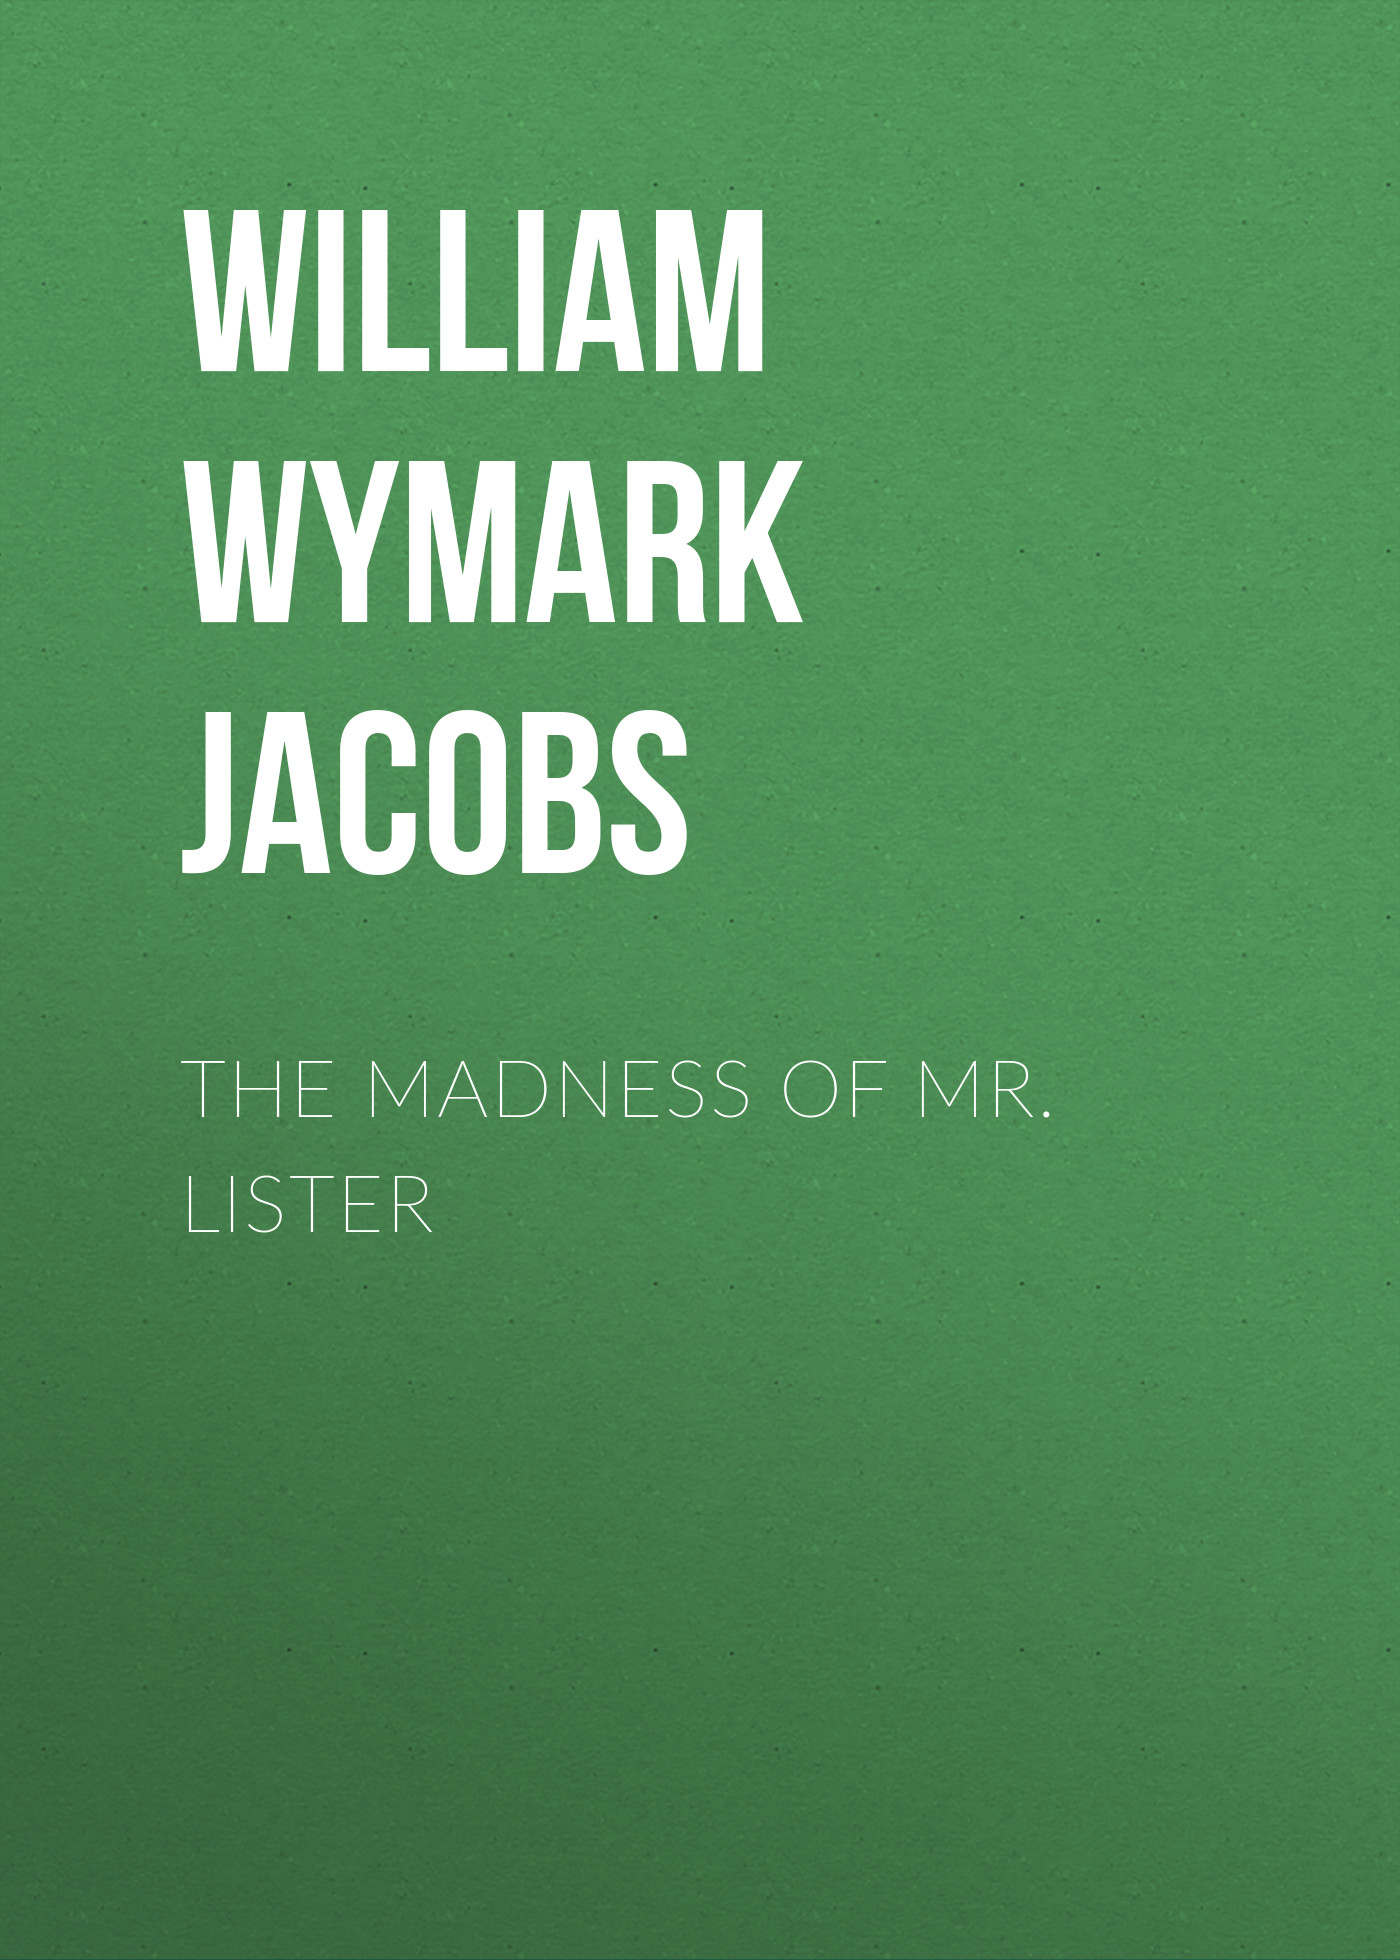 лучшая цена William Wymark Jacobs The Madness of Mr. Lister